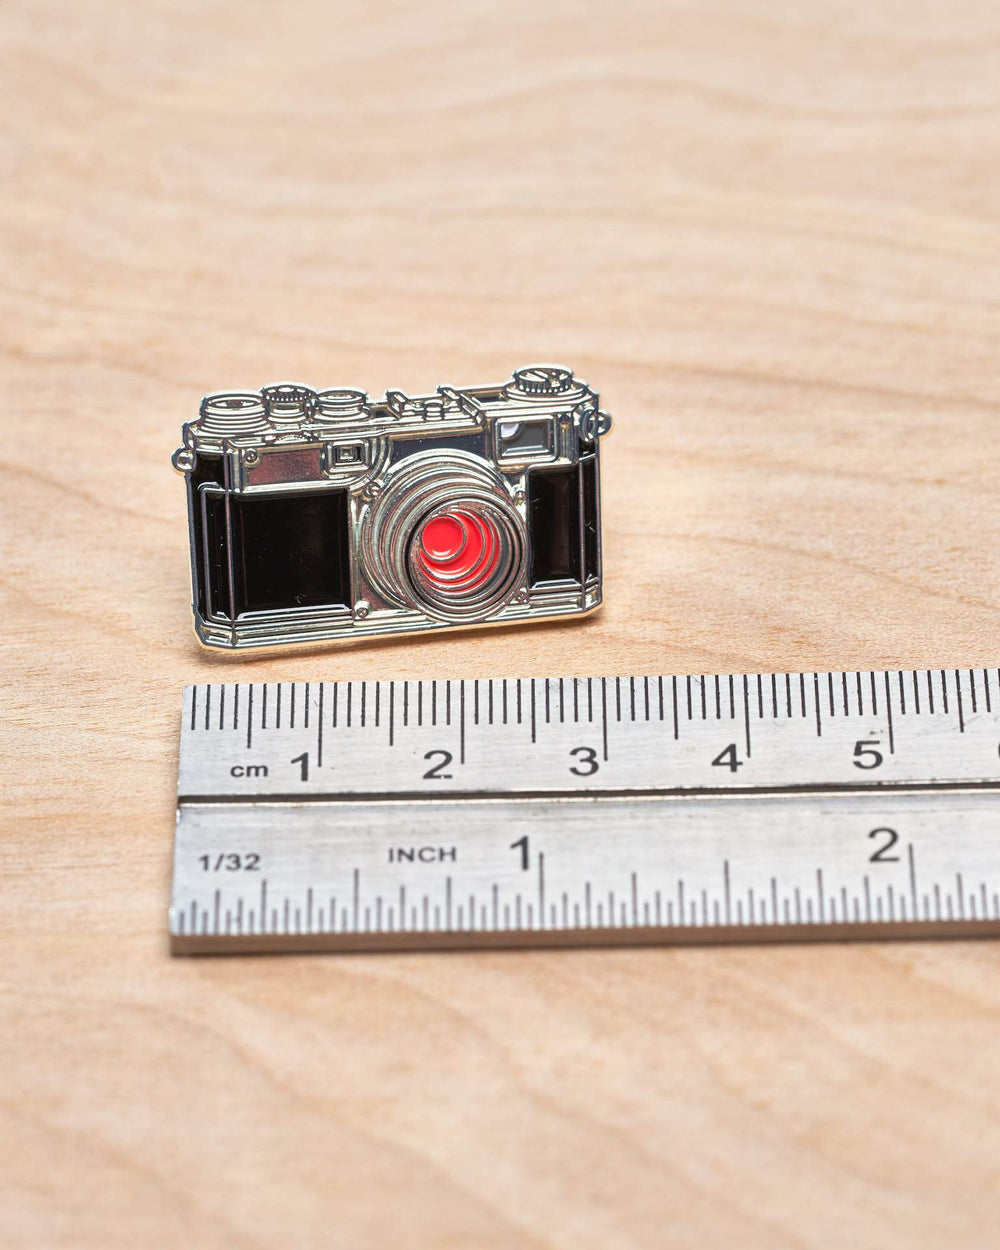 Rangefinder Camera #4 Pin